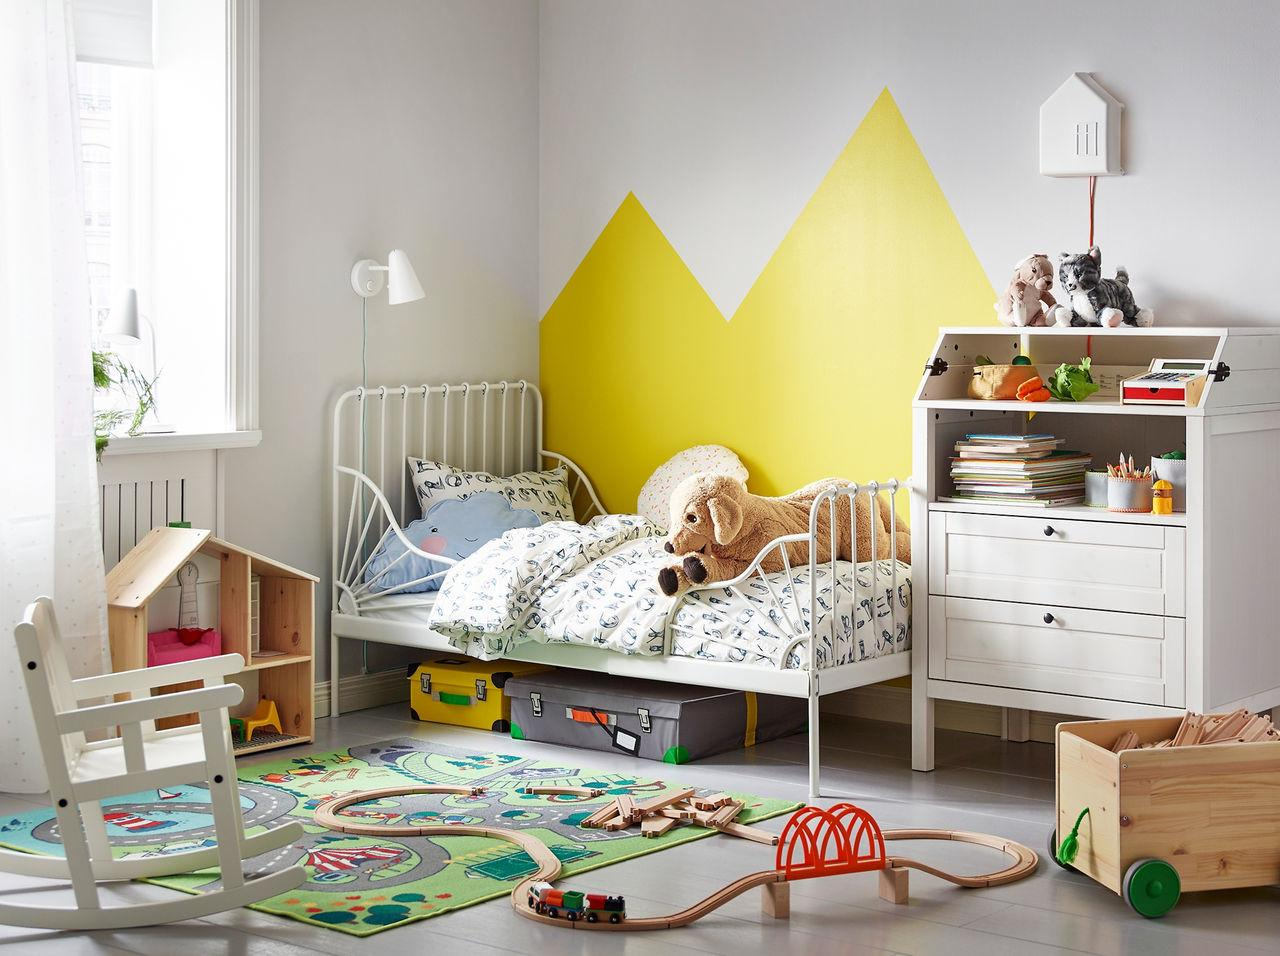 Kids Room Grey Color White Line Pattern Beautiful